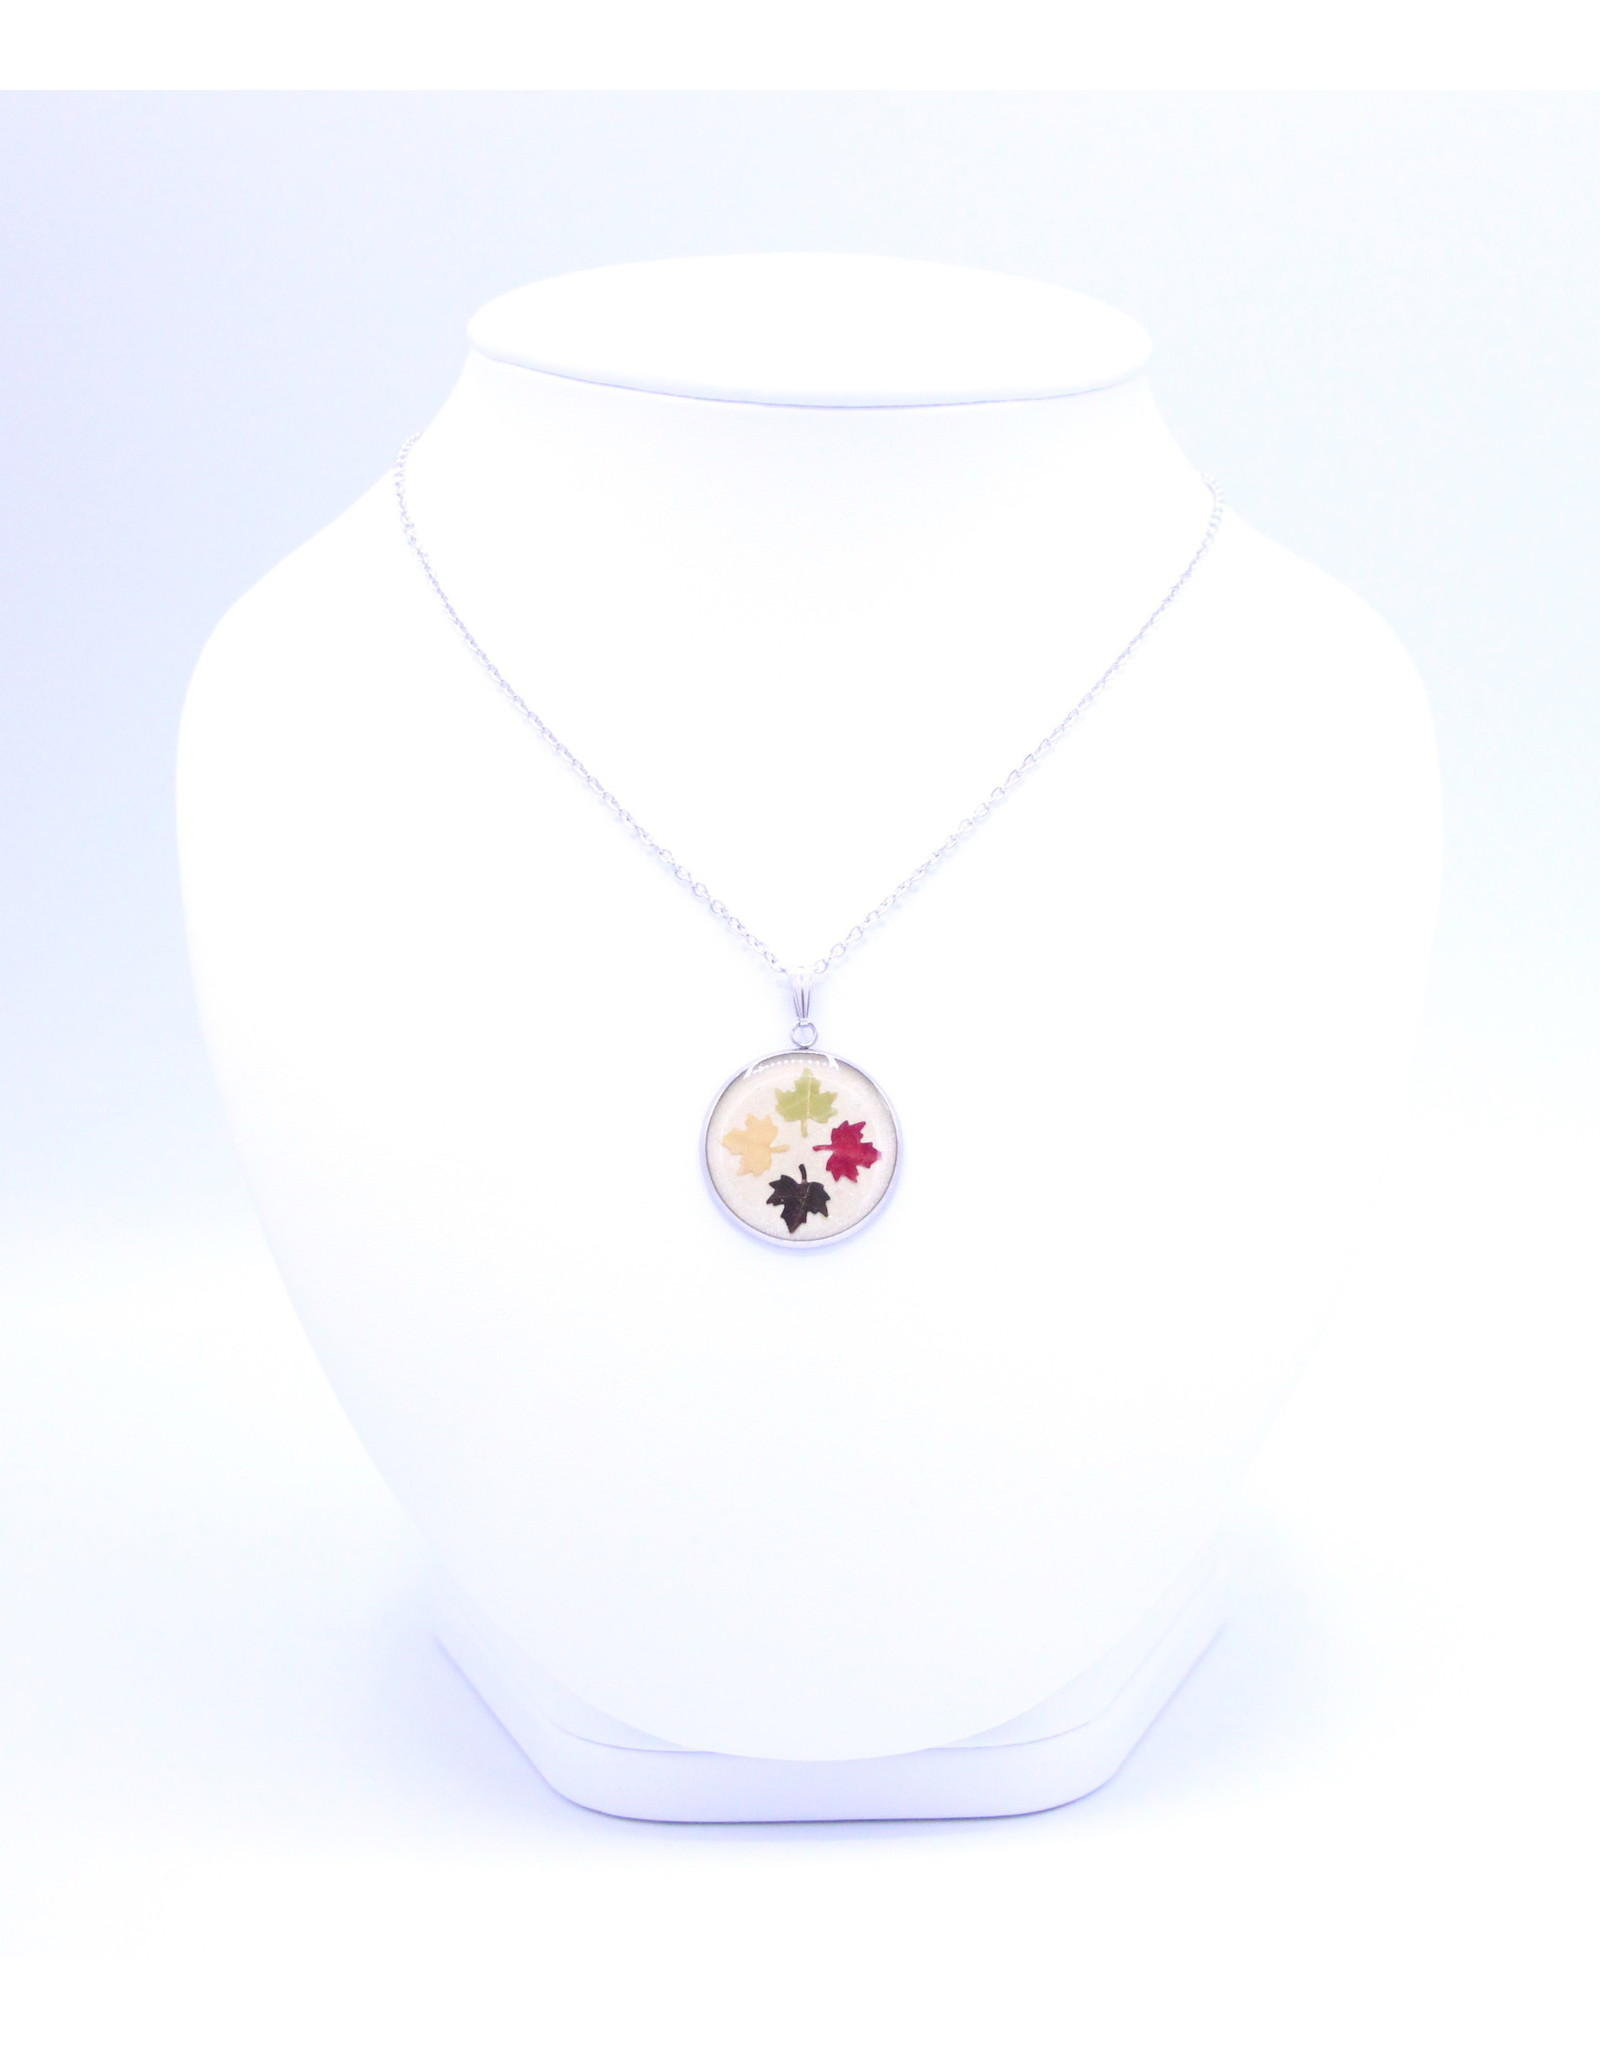 25mm Maple Leaf Necklace White - N25MLW1